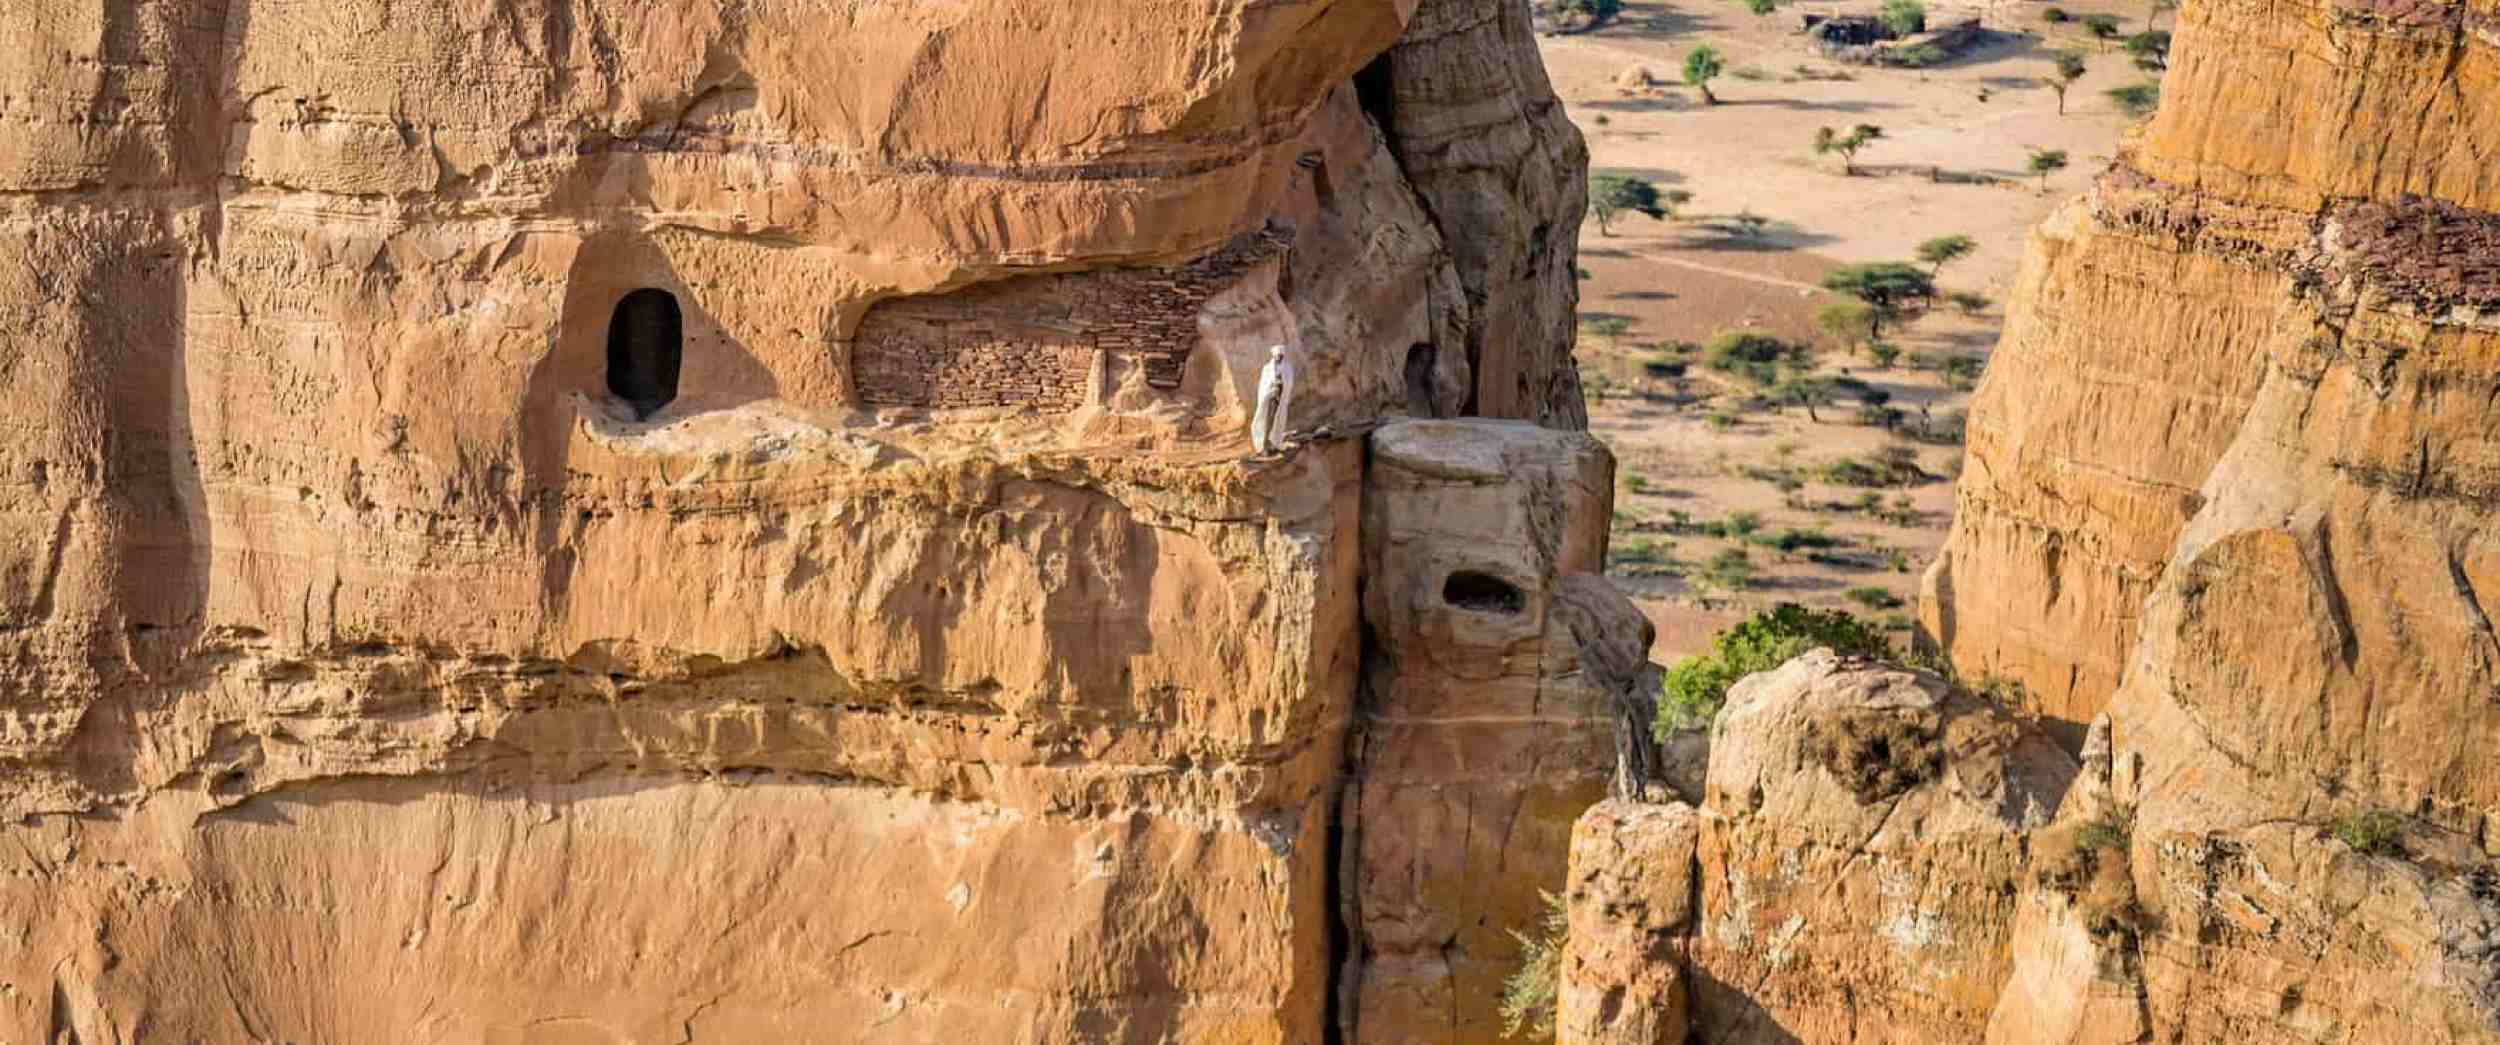 Undiscovered Ethiopia: <br />Abuna Yemata Guh in Tigray - An aerial shot of Abuna Yemata Guh by the Guardian